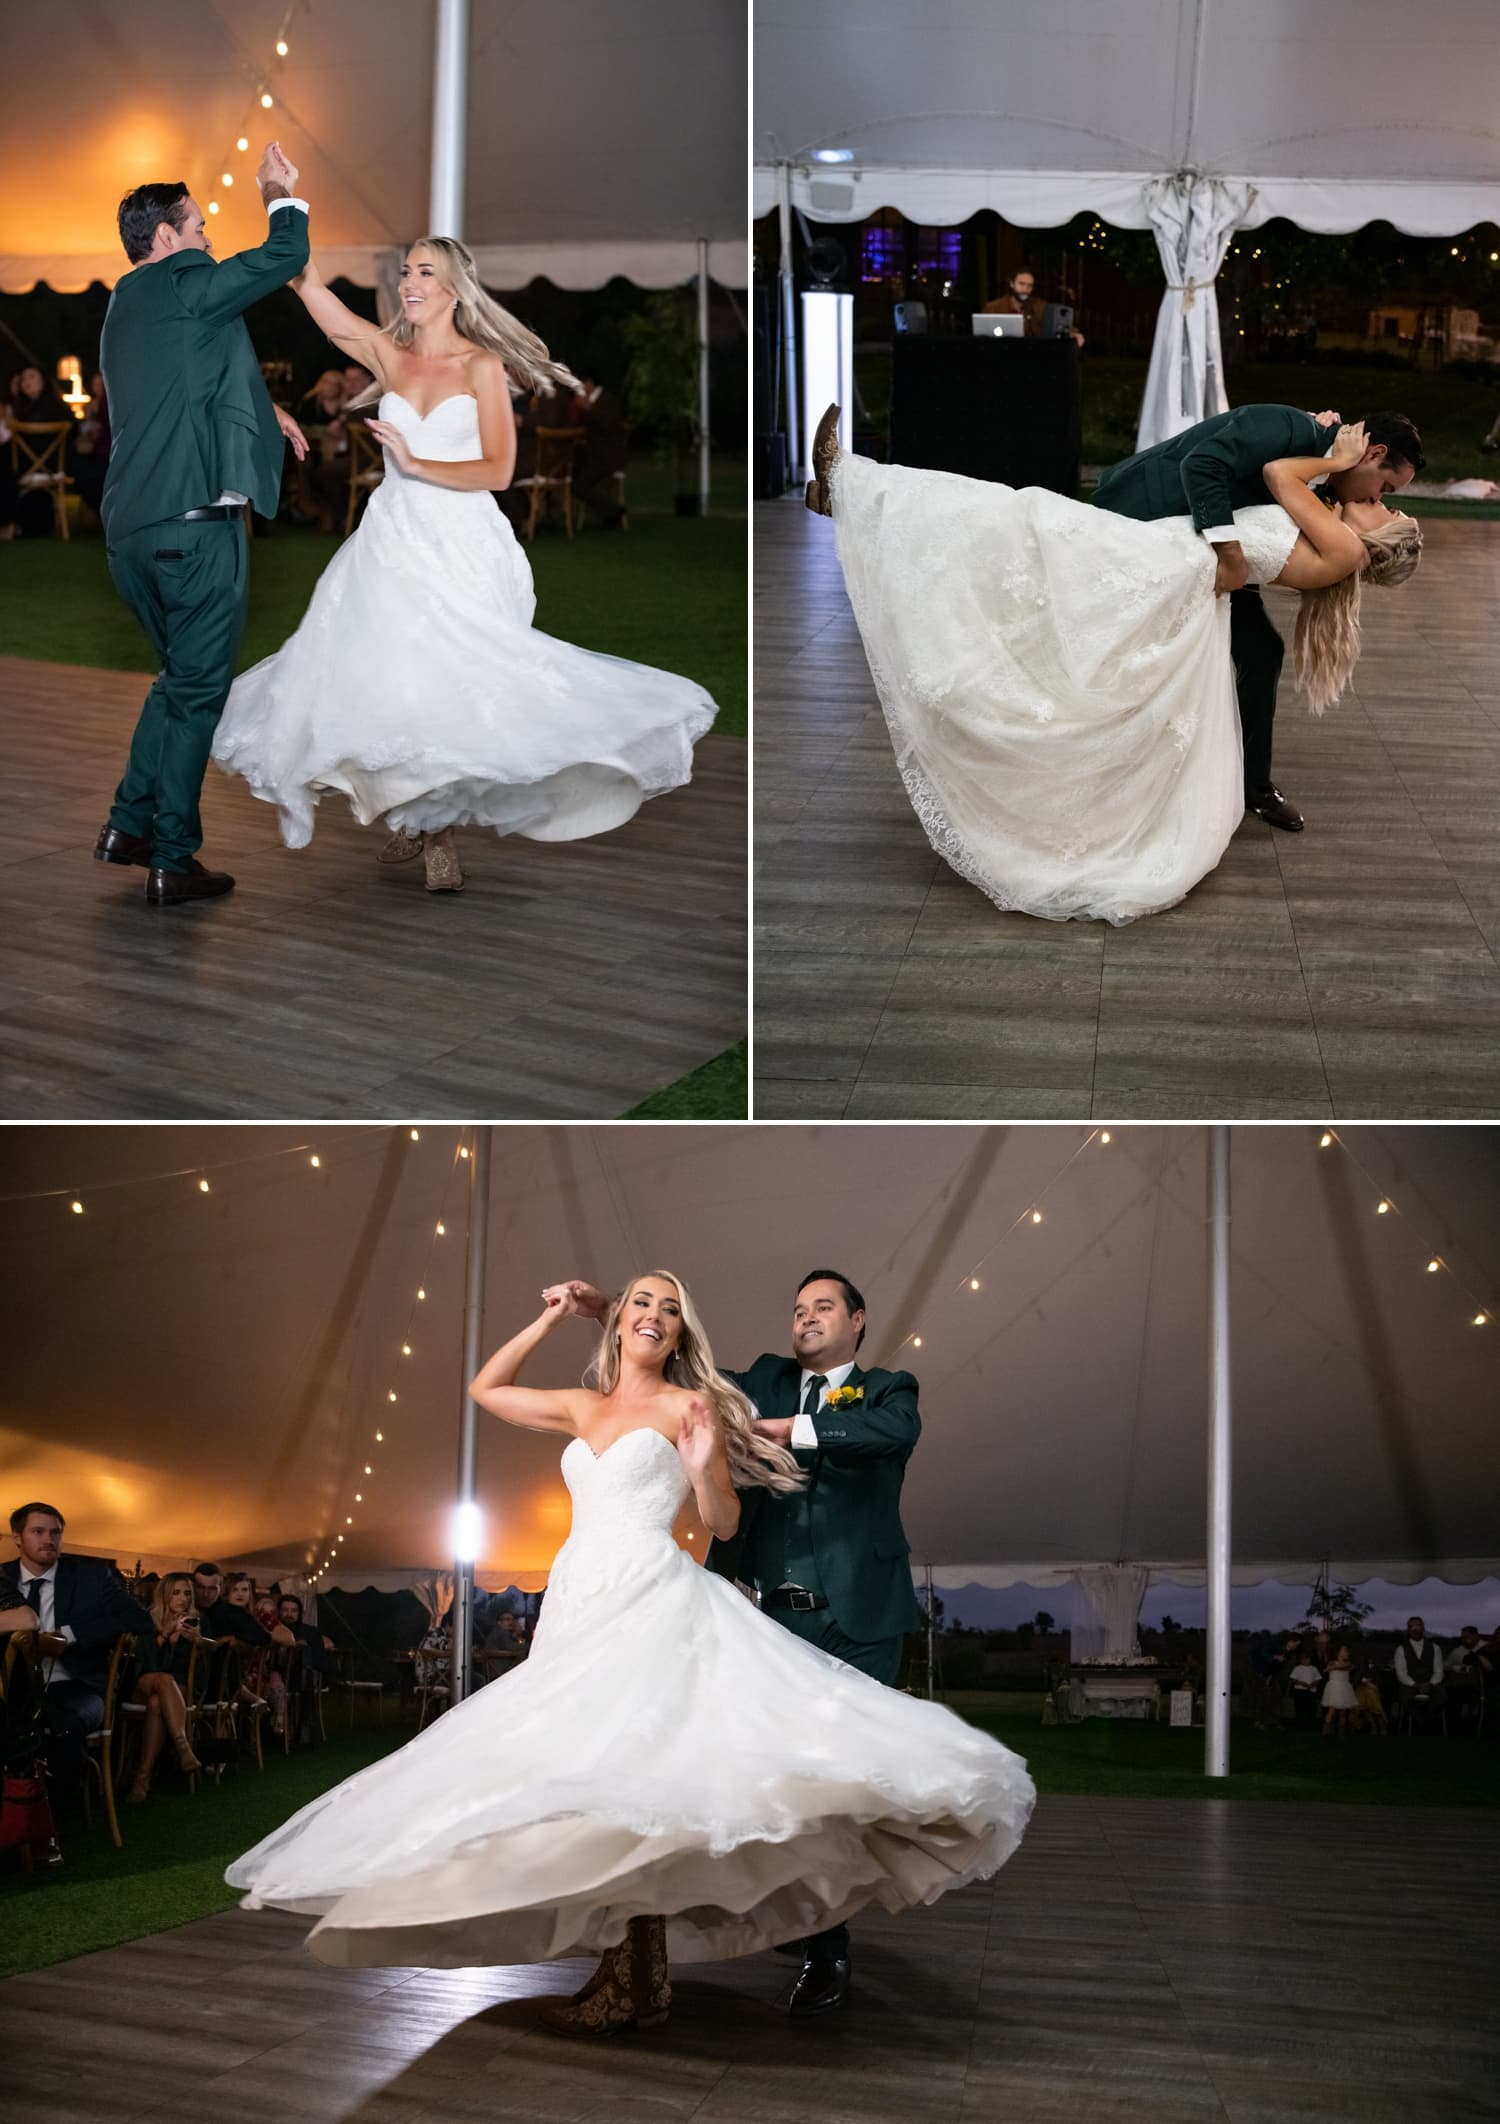 Bride and groom's first dance at Ethereal Gardens wedding.